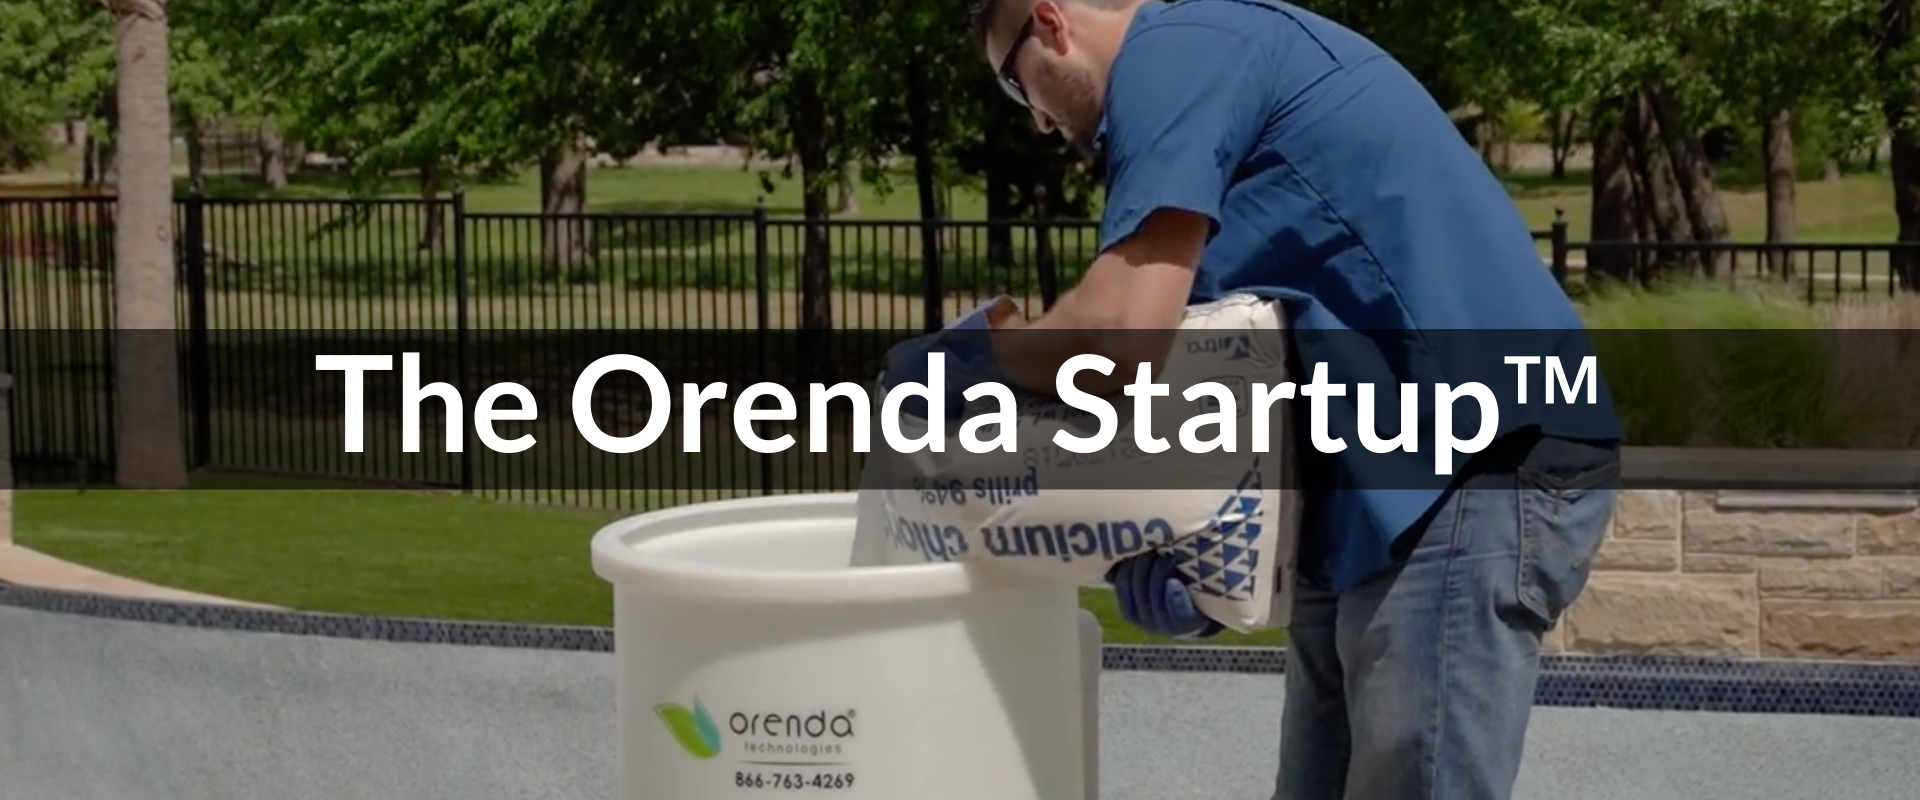 The Orenda Startup, pool startup, how to fill a pool, pool plaster, new plaster pool, NPC startup, LSI start up, LSI pool